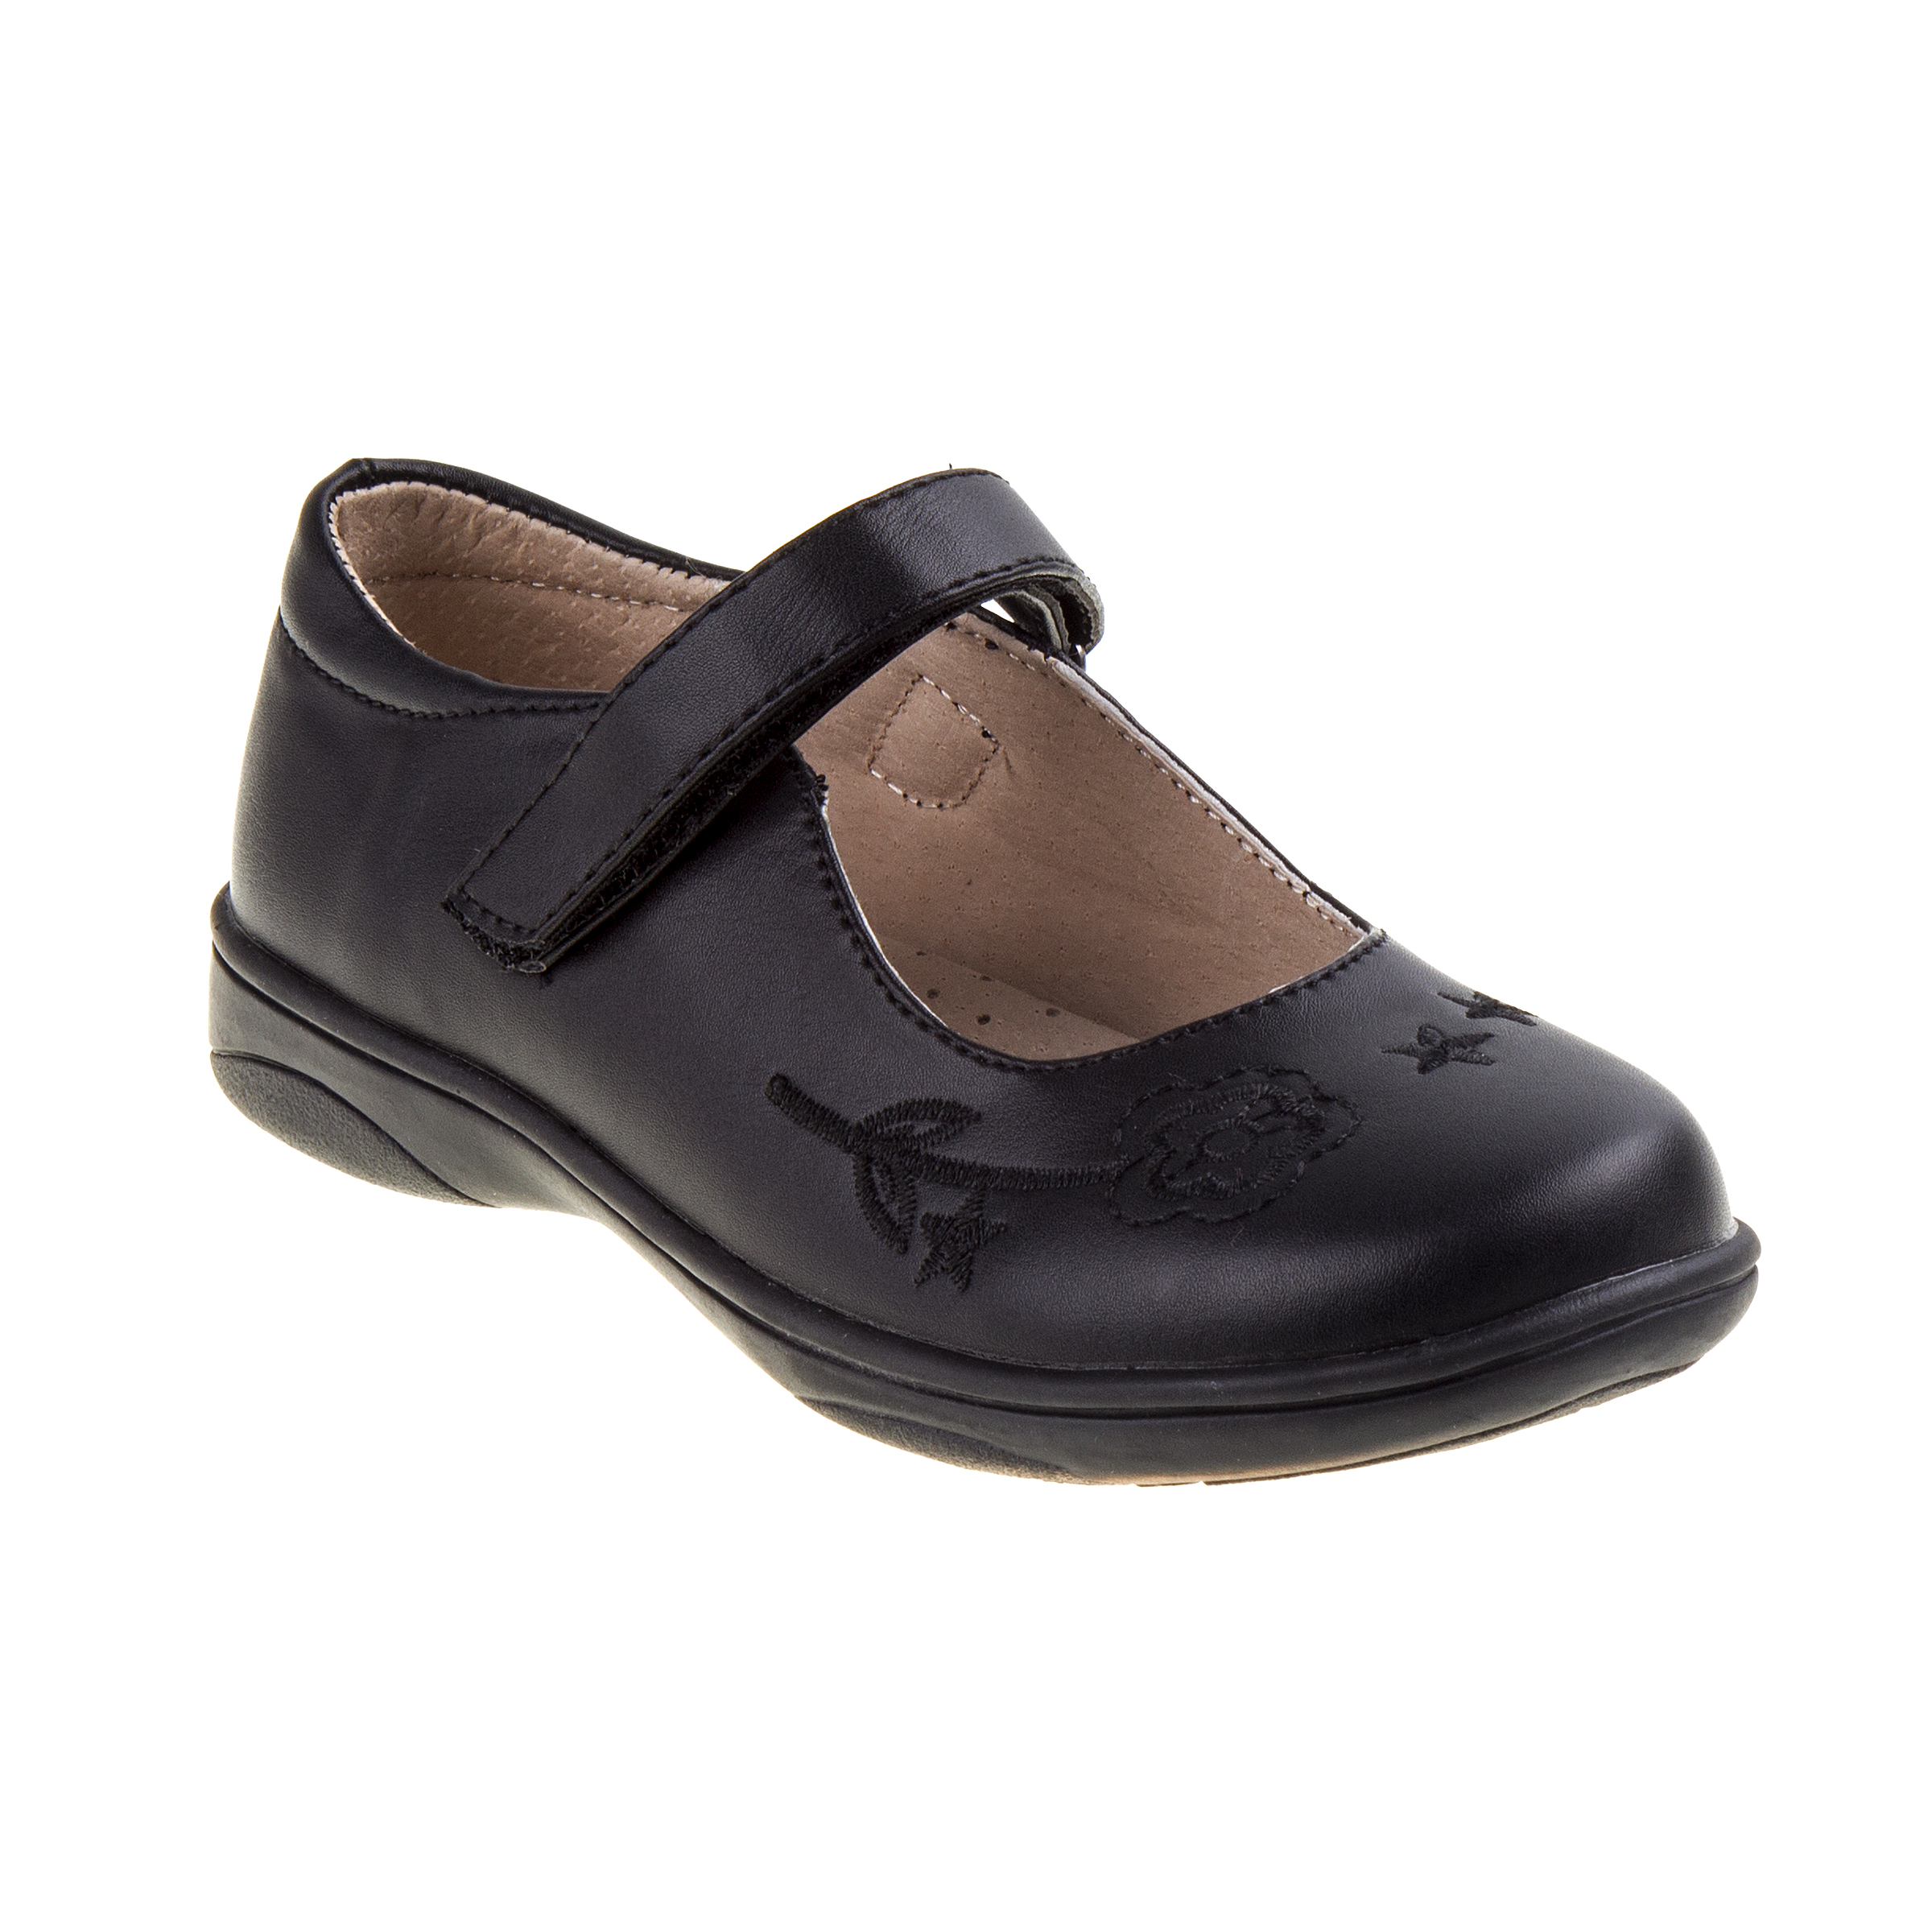 *Leather Lined Ankle Strap